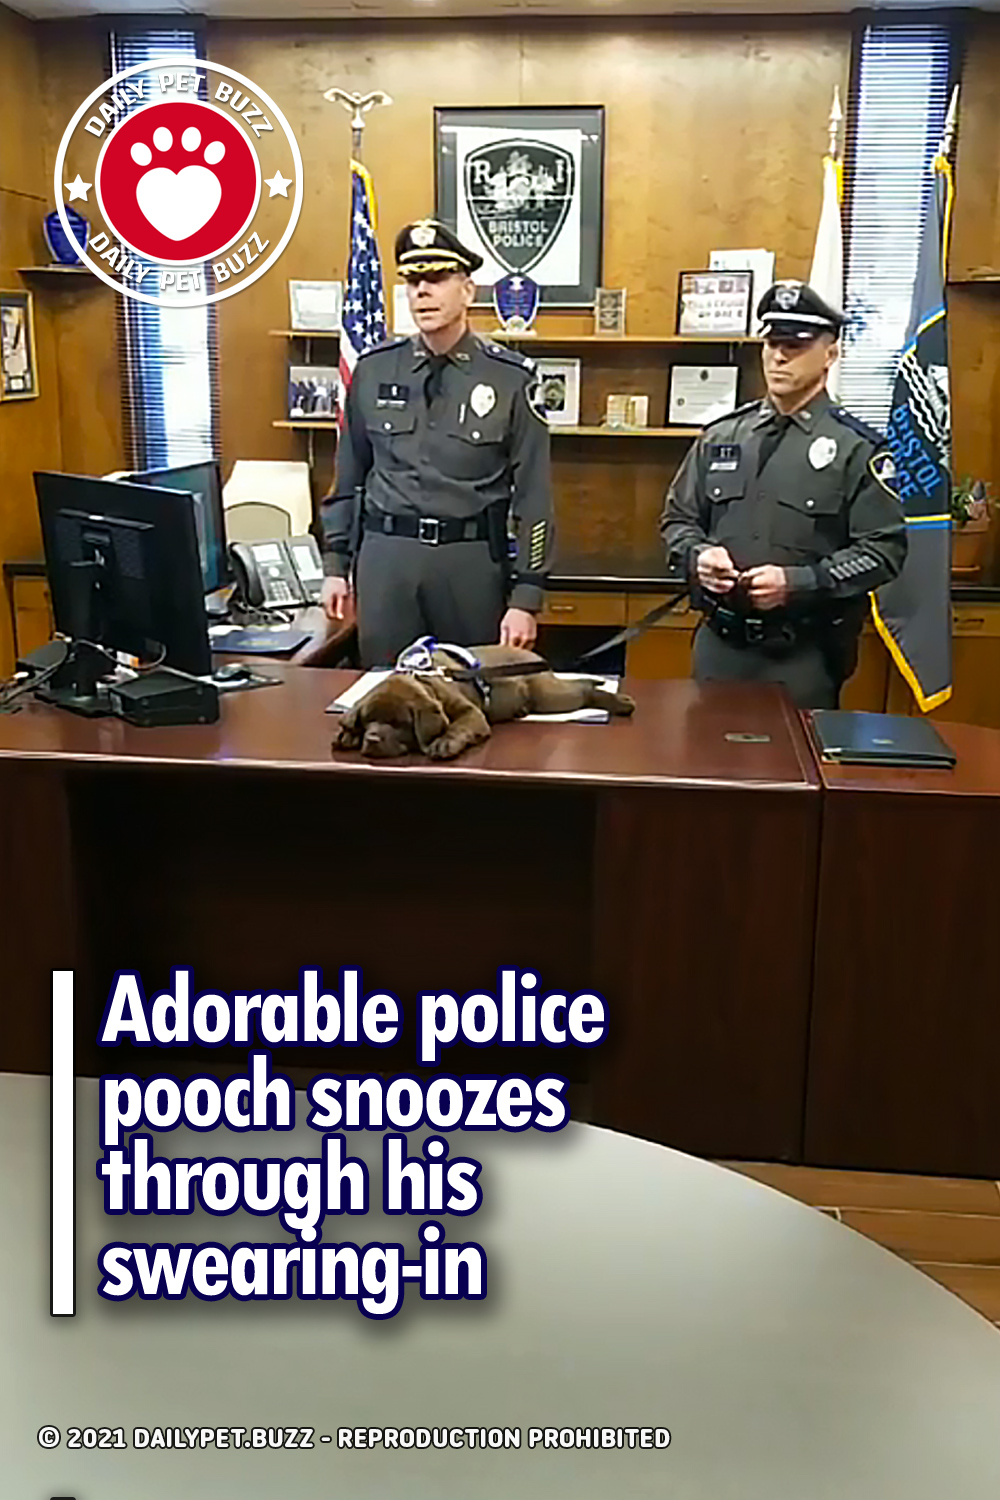 Adorable police pooch snoozes through his swearing-in